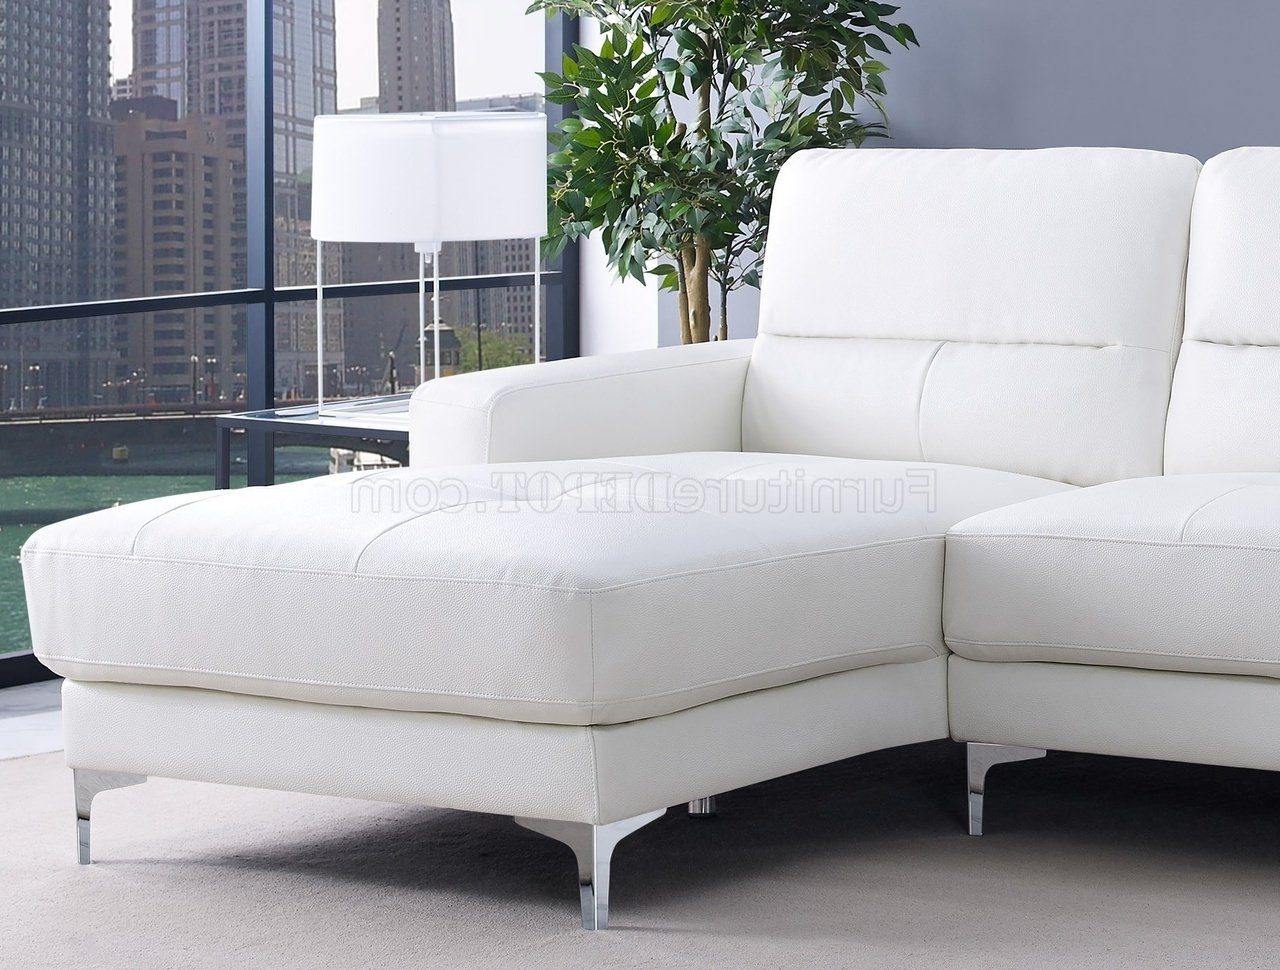 Latest Memphis Sectional Sofas With Regard To Sectional Sofa In White Bonded Leatherwhiteline (View 10 of 20)